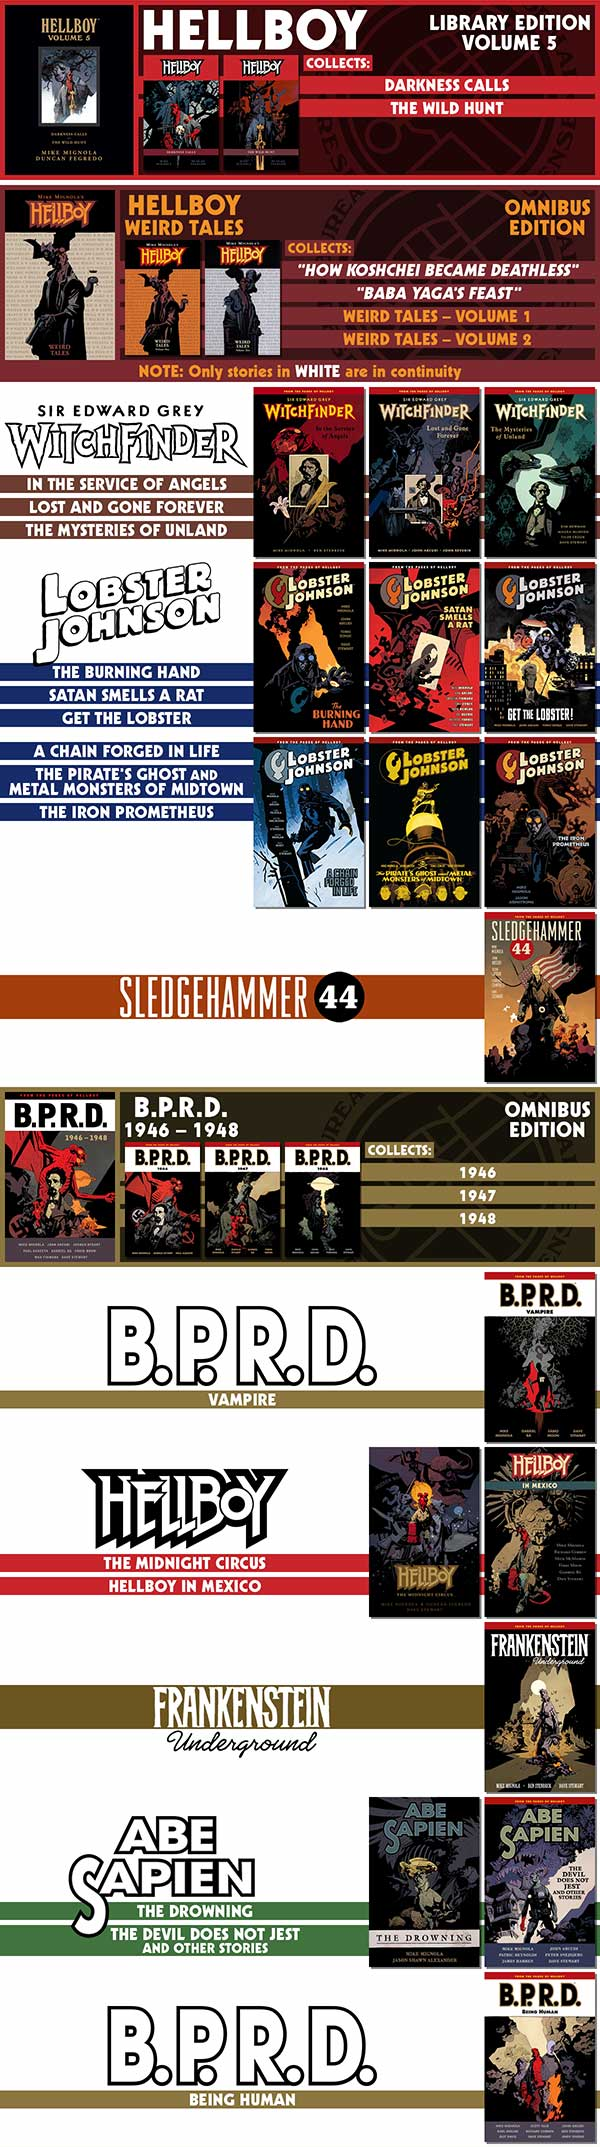 The Hellboy Universe Reading Order ― 2017 (Part 2)